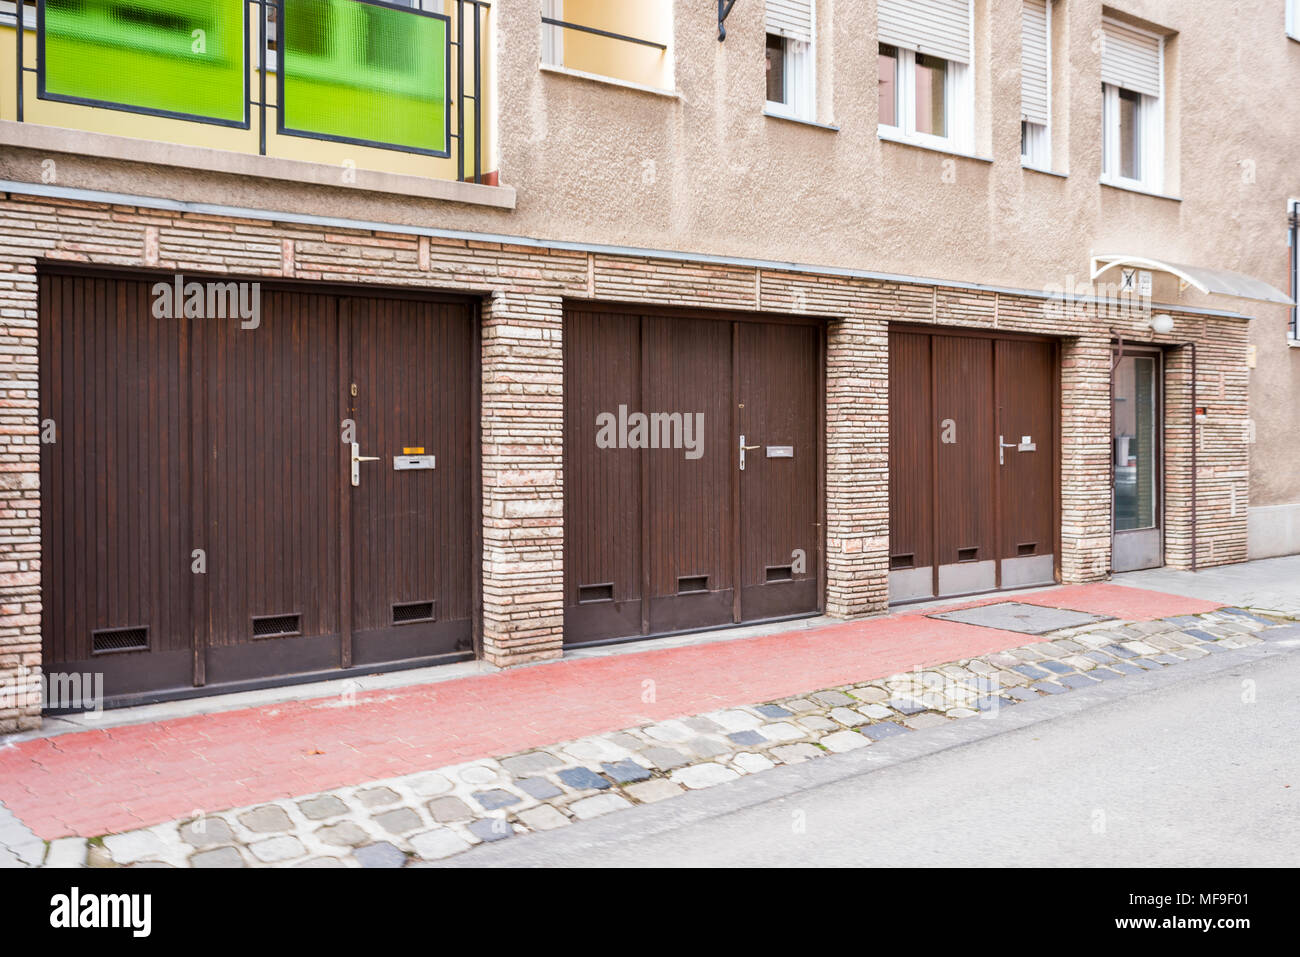 garage gates for cars in a building Stock Photo